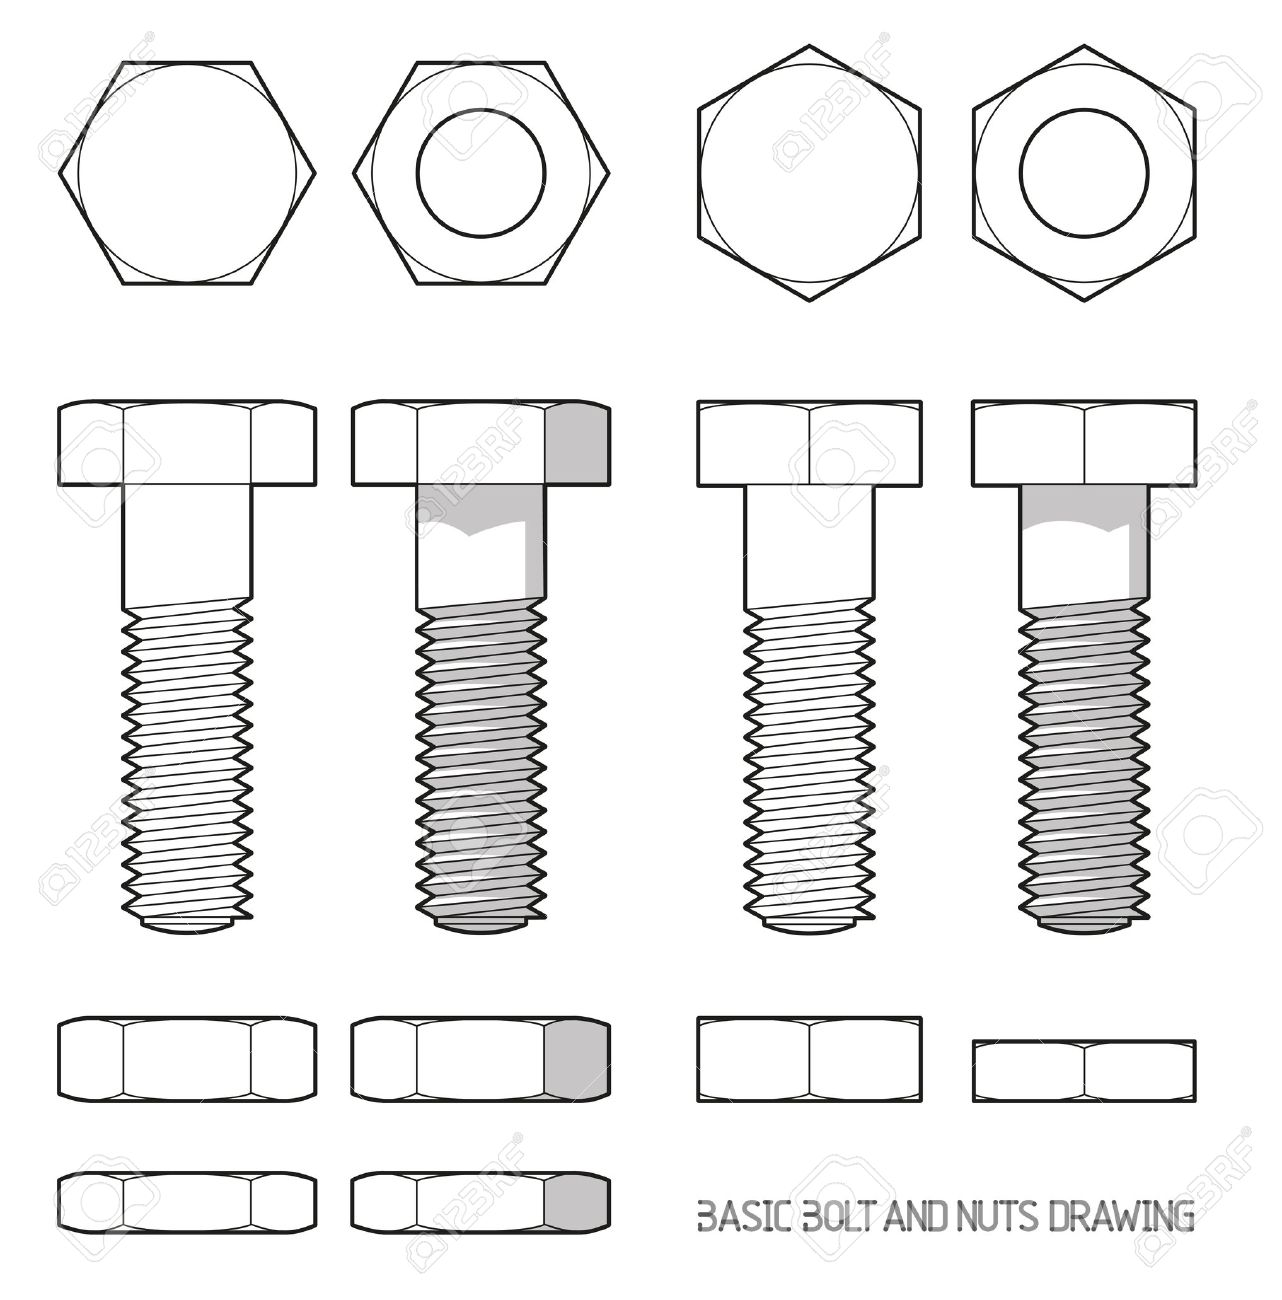 Hexagonal bolt and nuts in orthogonal projection - 40926367